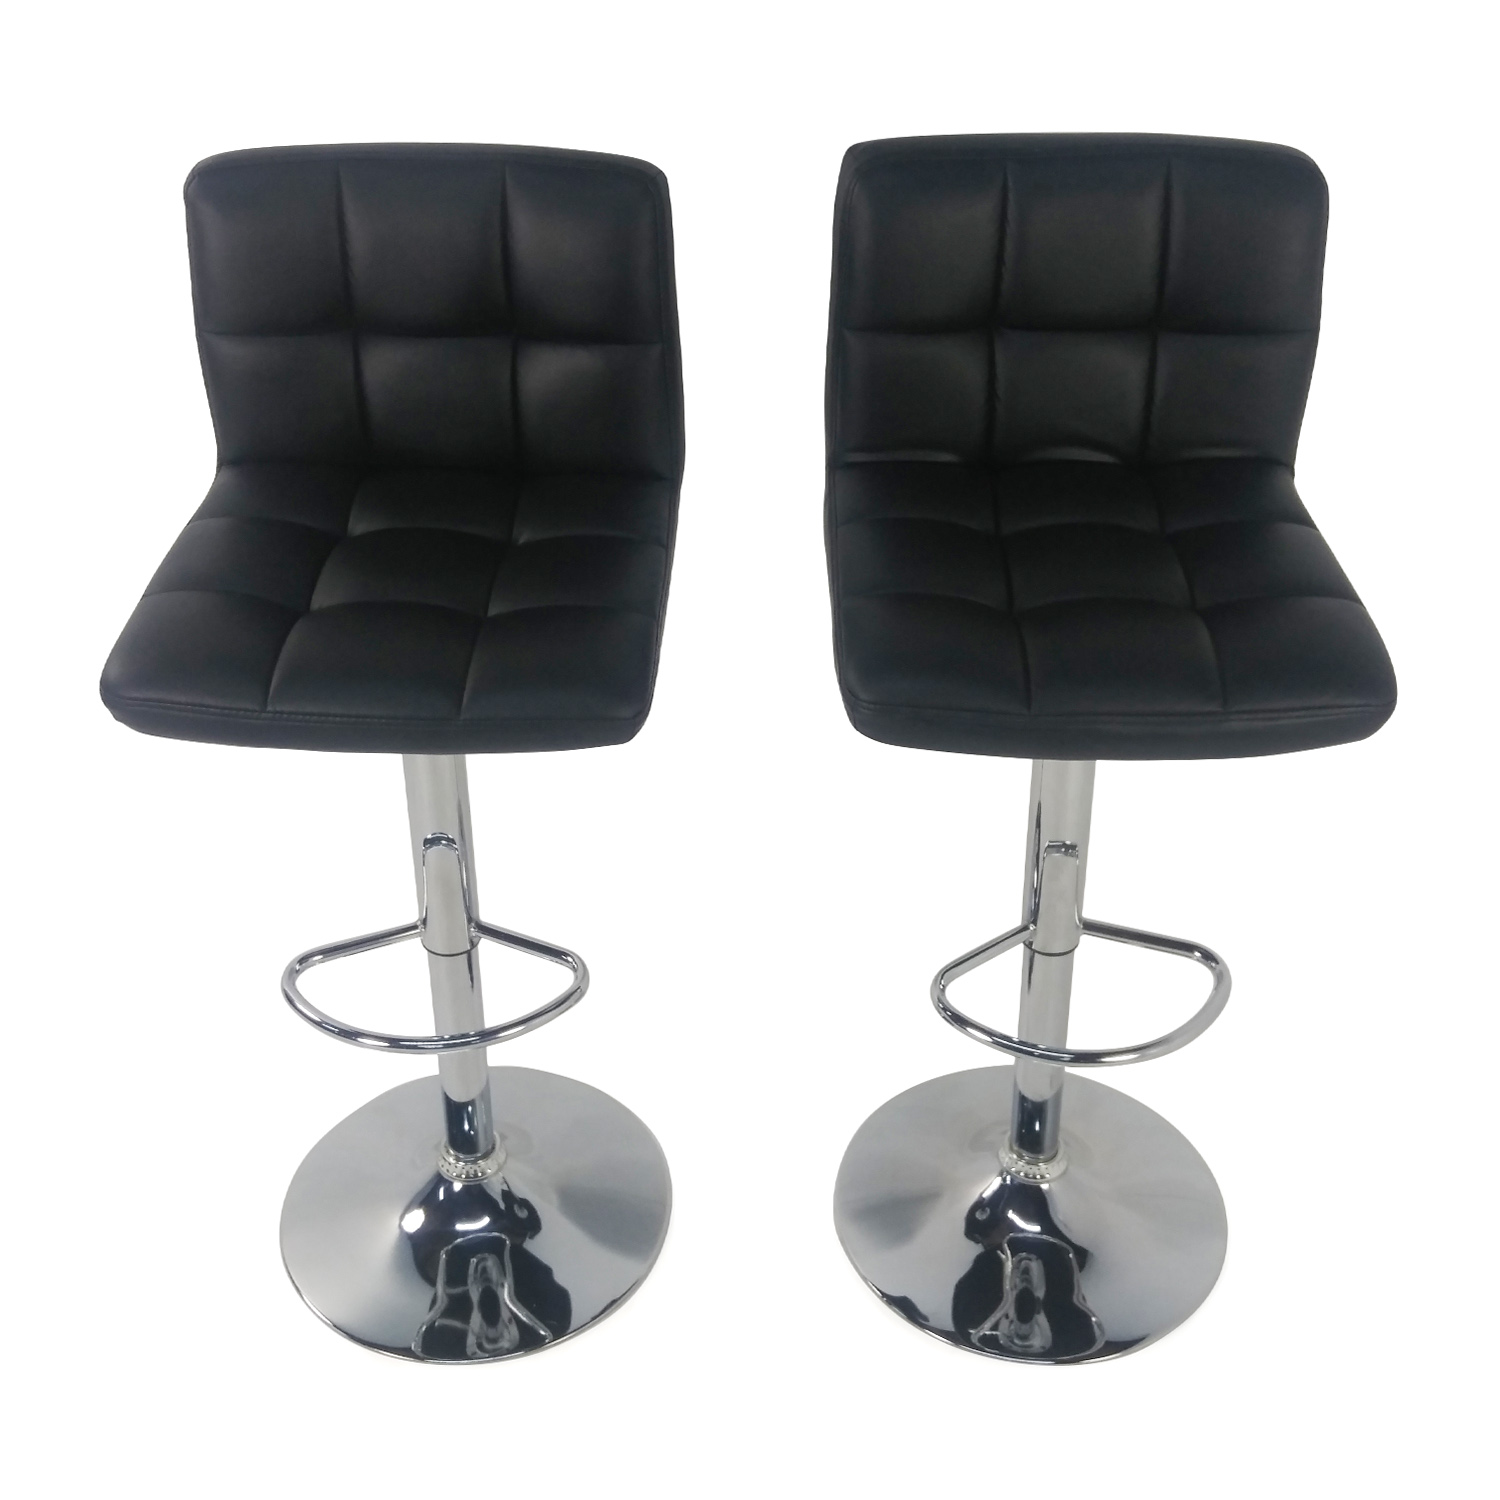 buy Roundhill Black Adjustable Swivel Chairs Roundhill